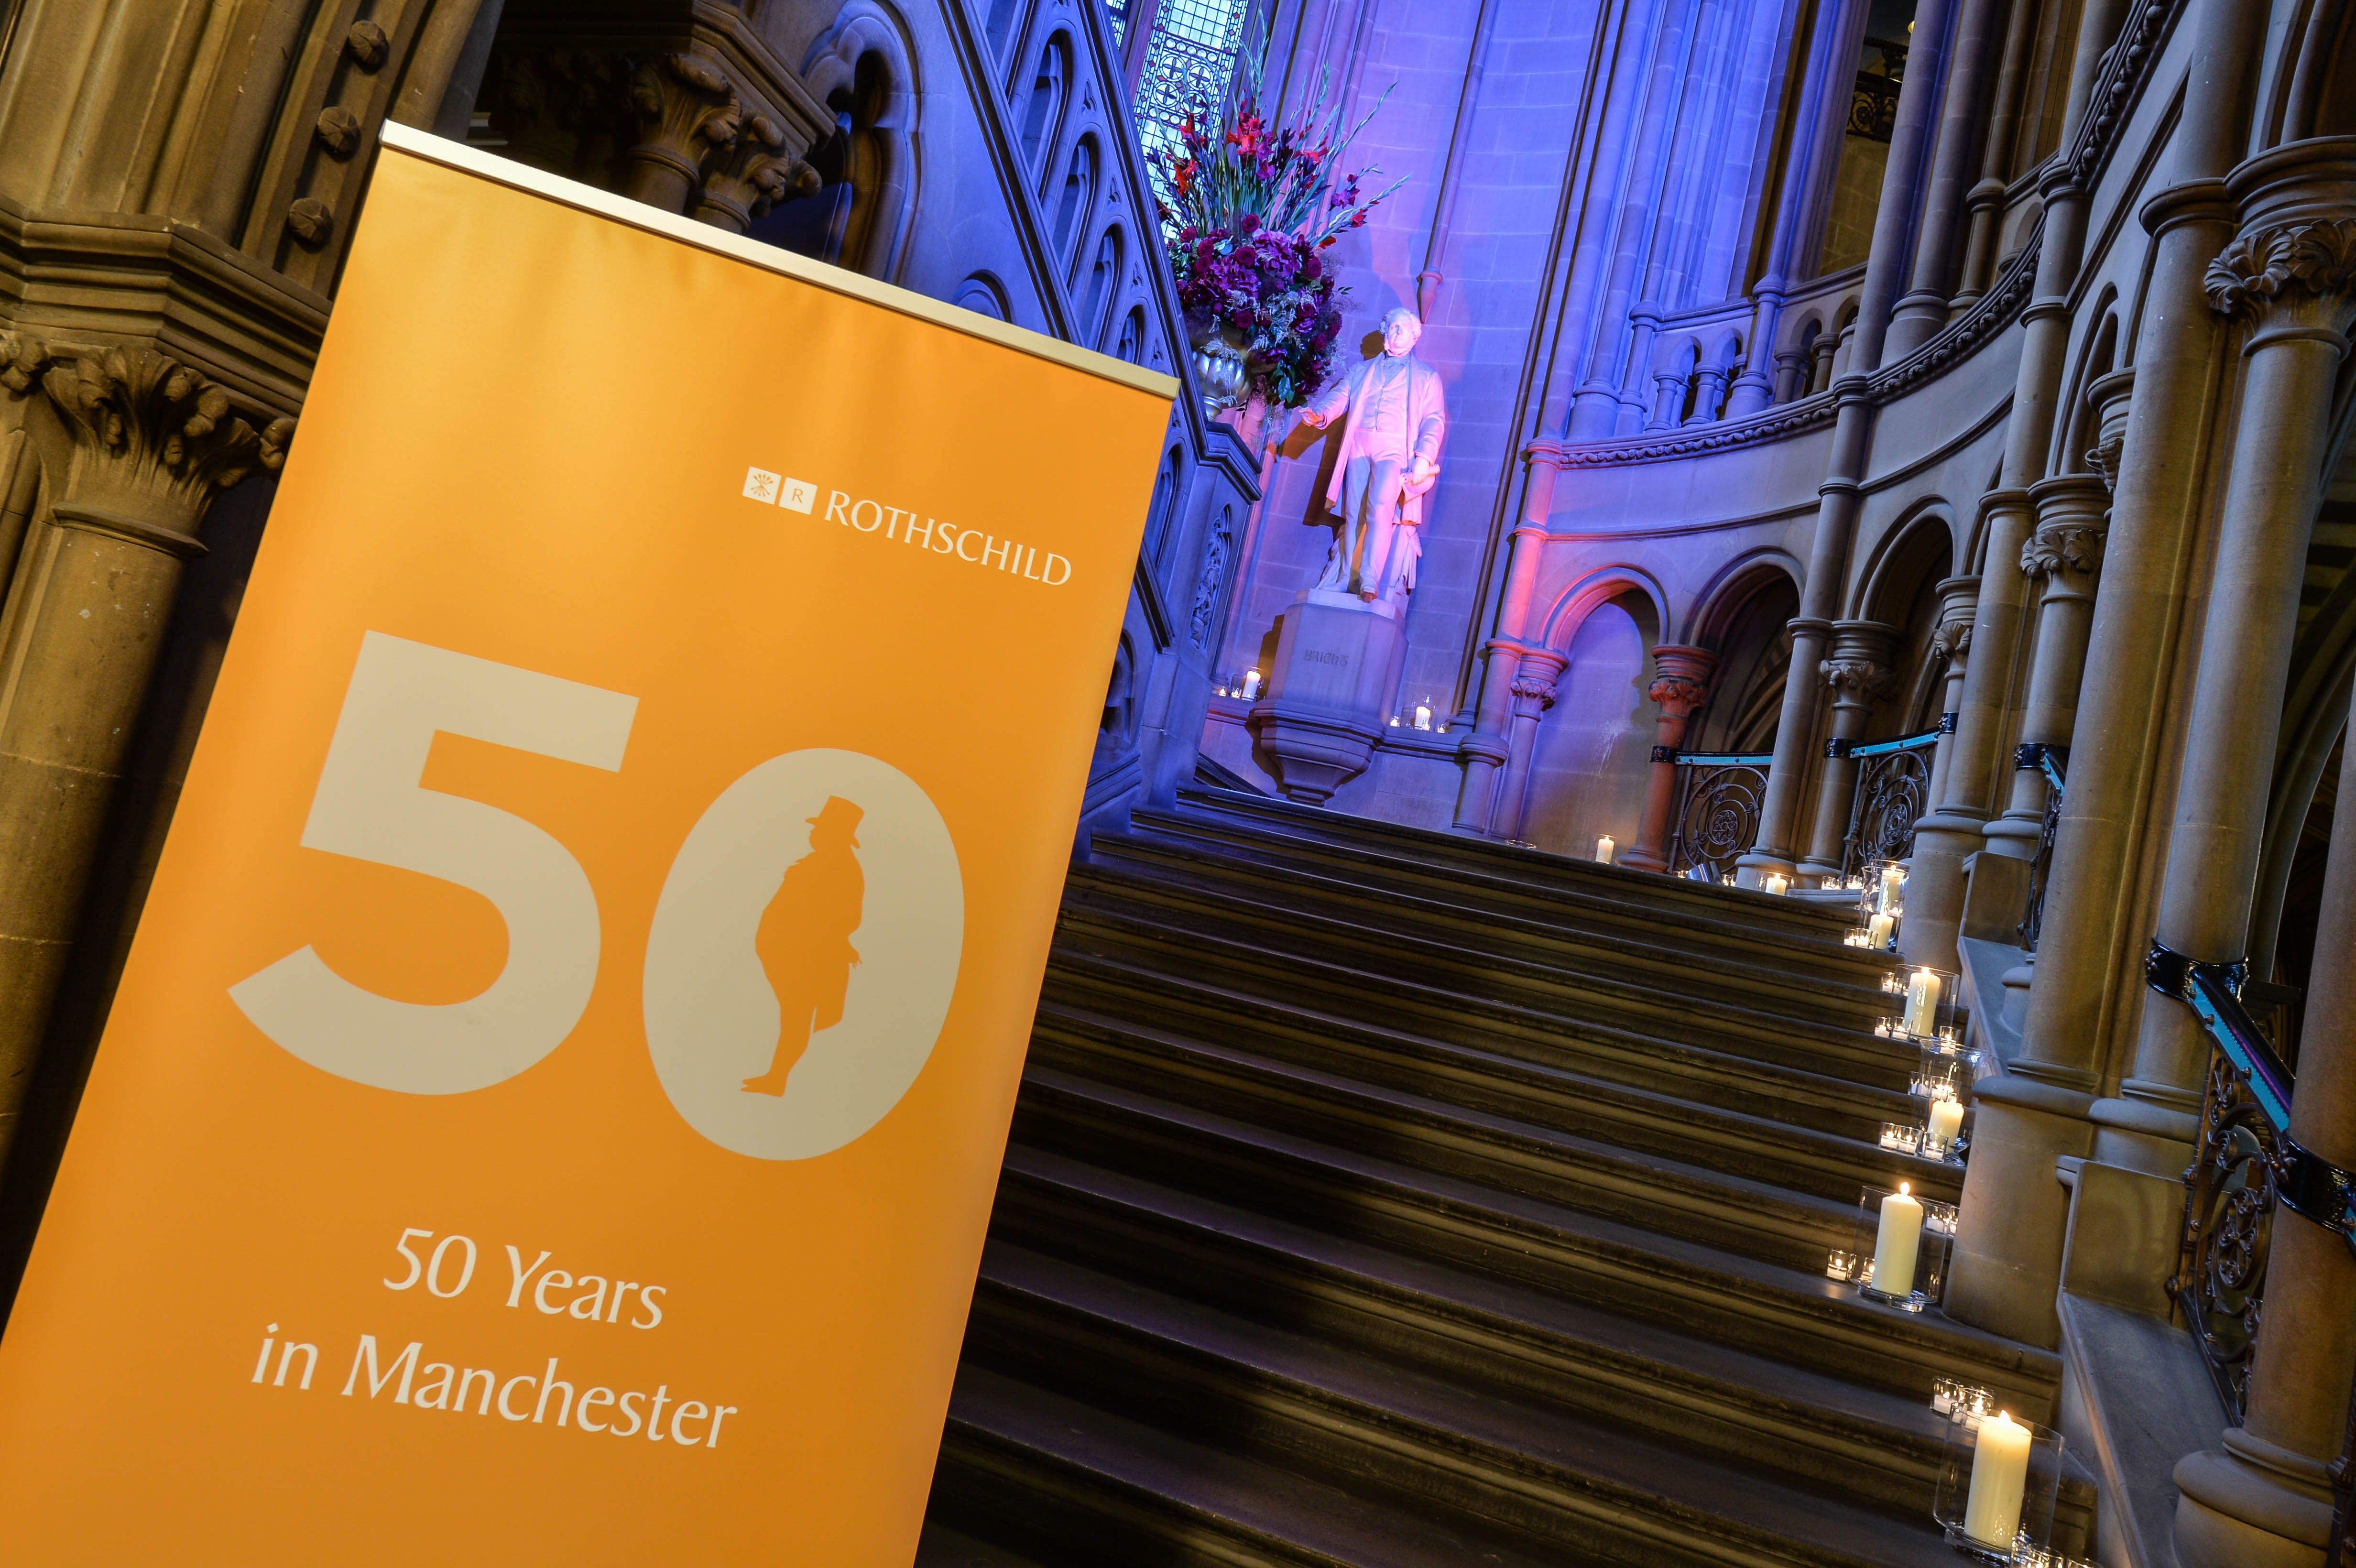 Wedding Anniversary Ideas Manchester : ... anniversary in manchester planning rothschild s anniversary in